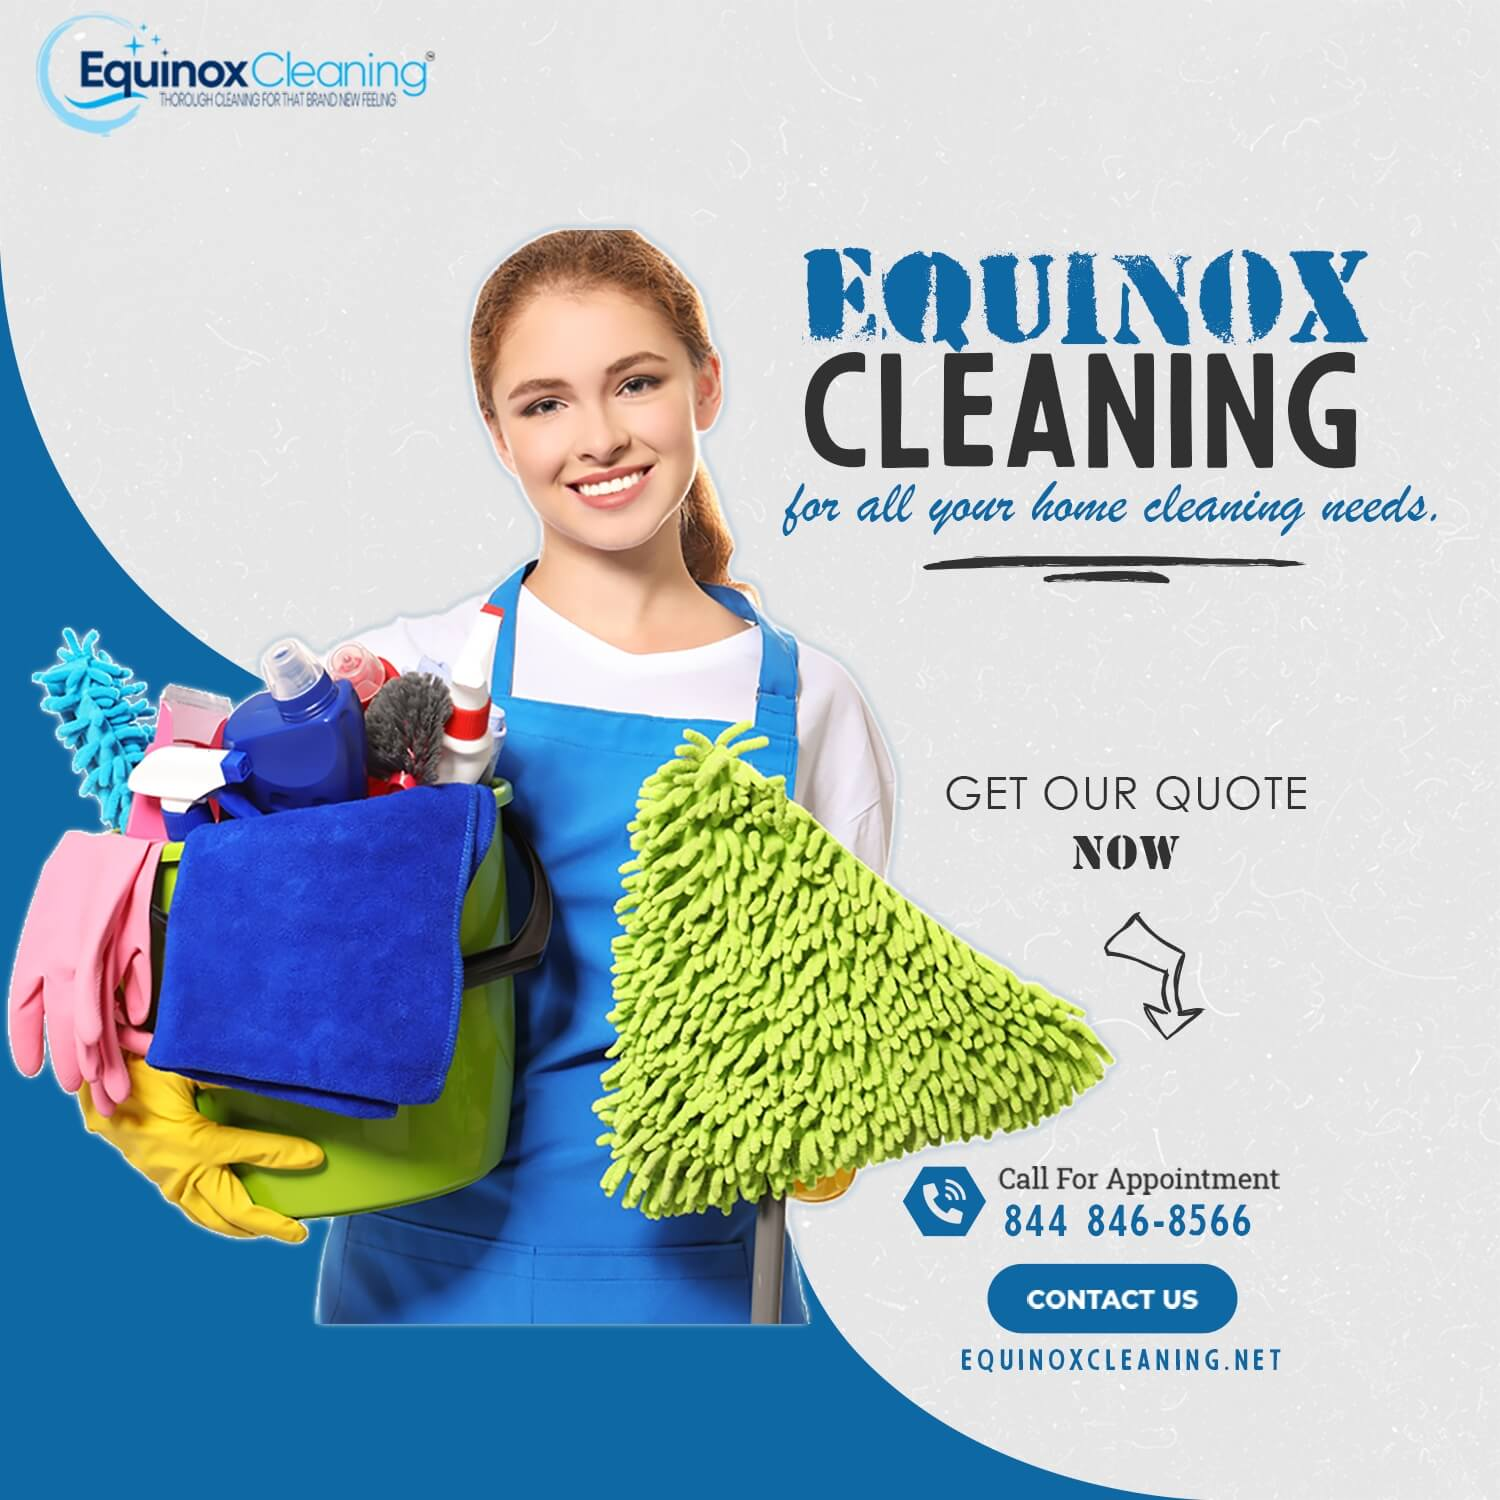 Best Home cleaning services in your area - Equinox cleaning